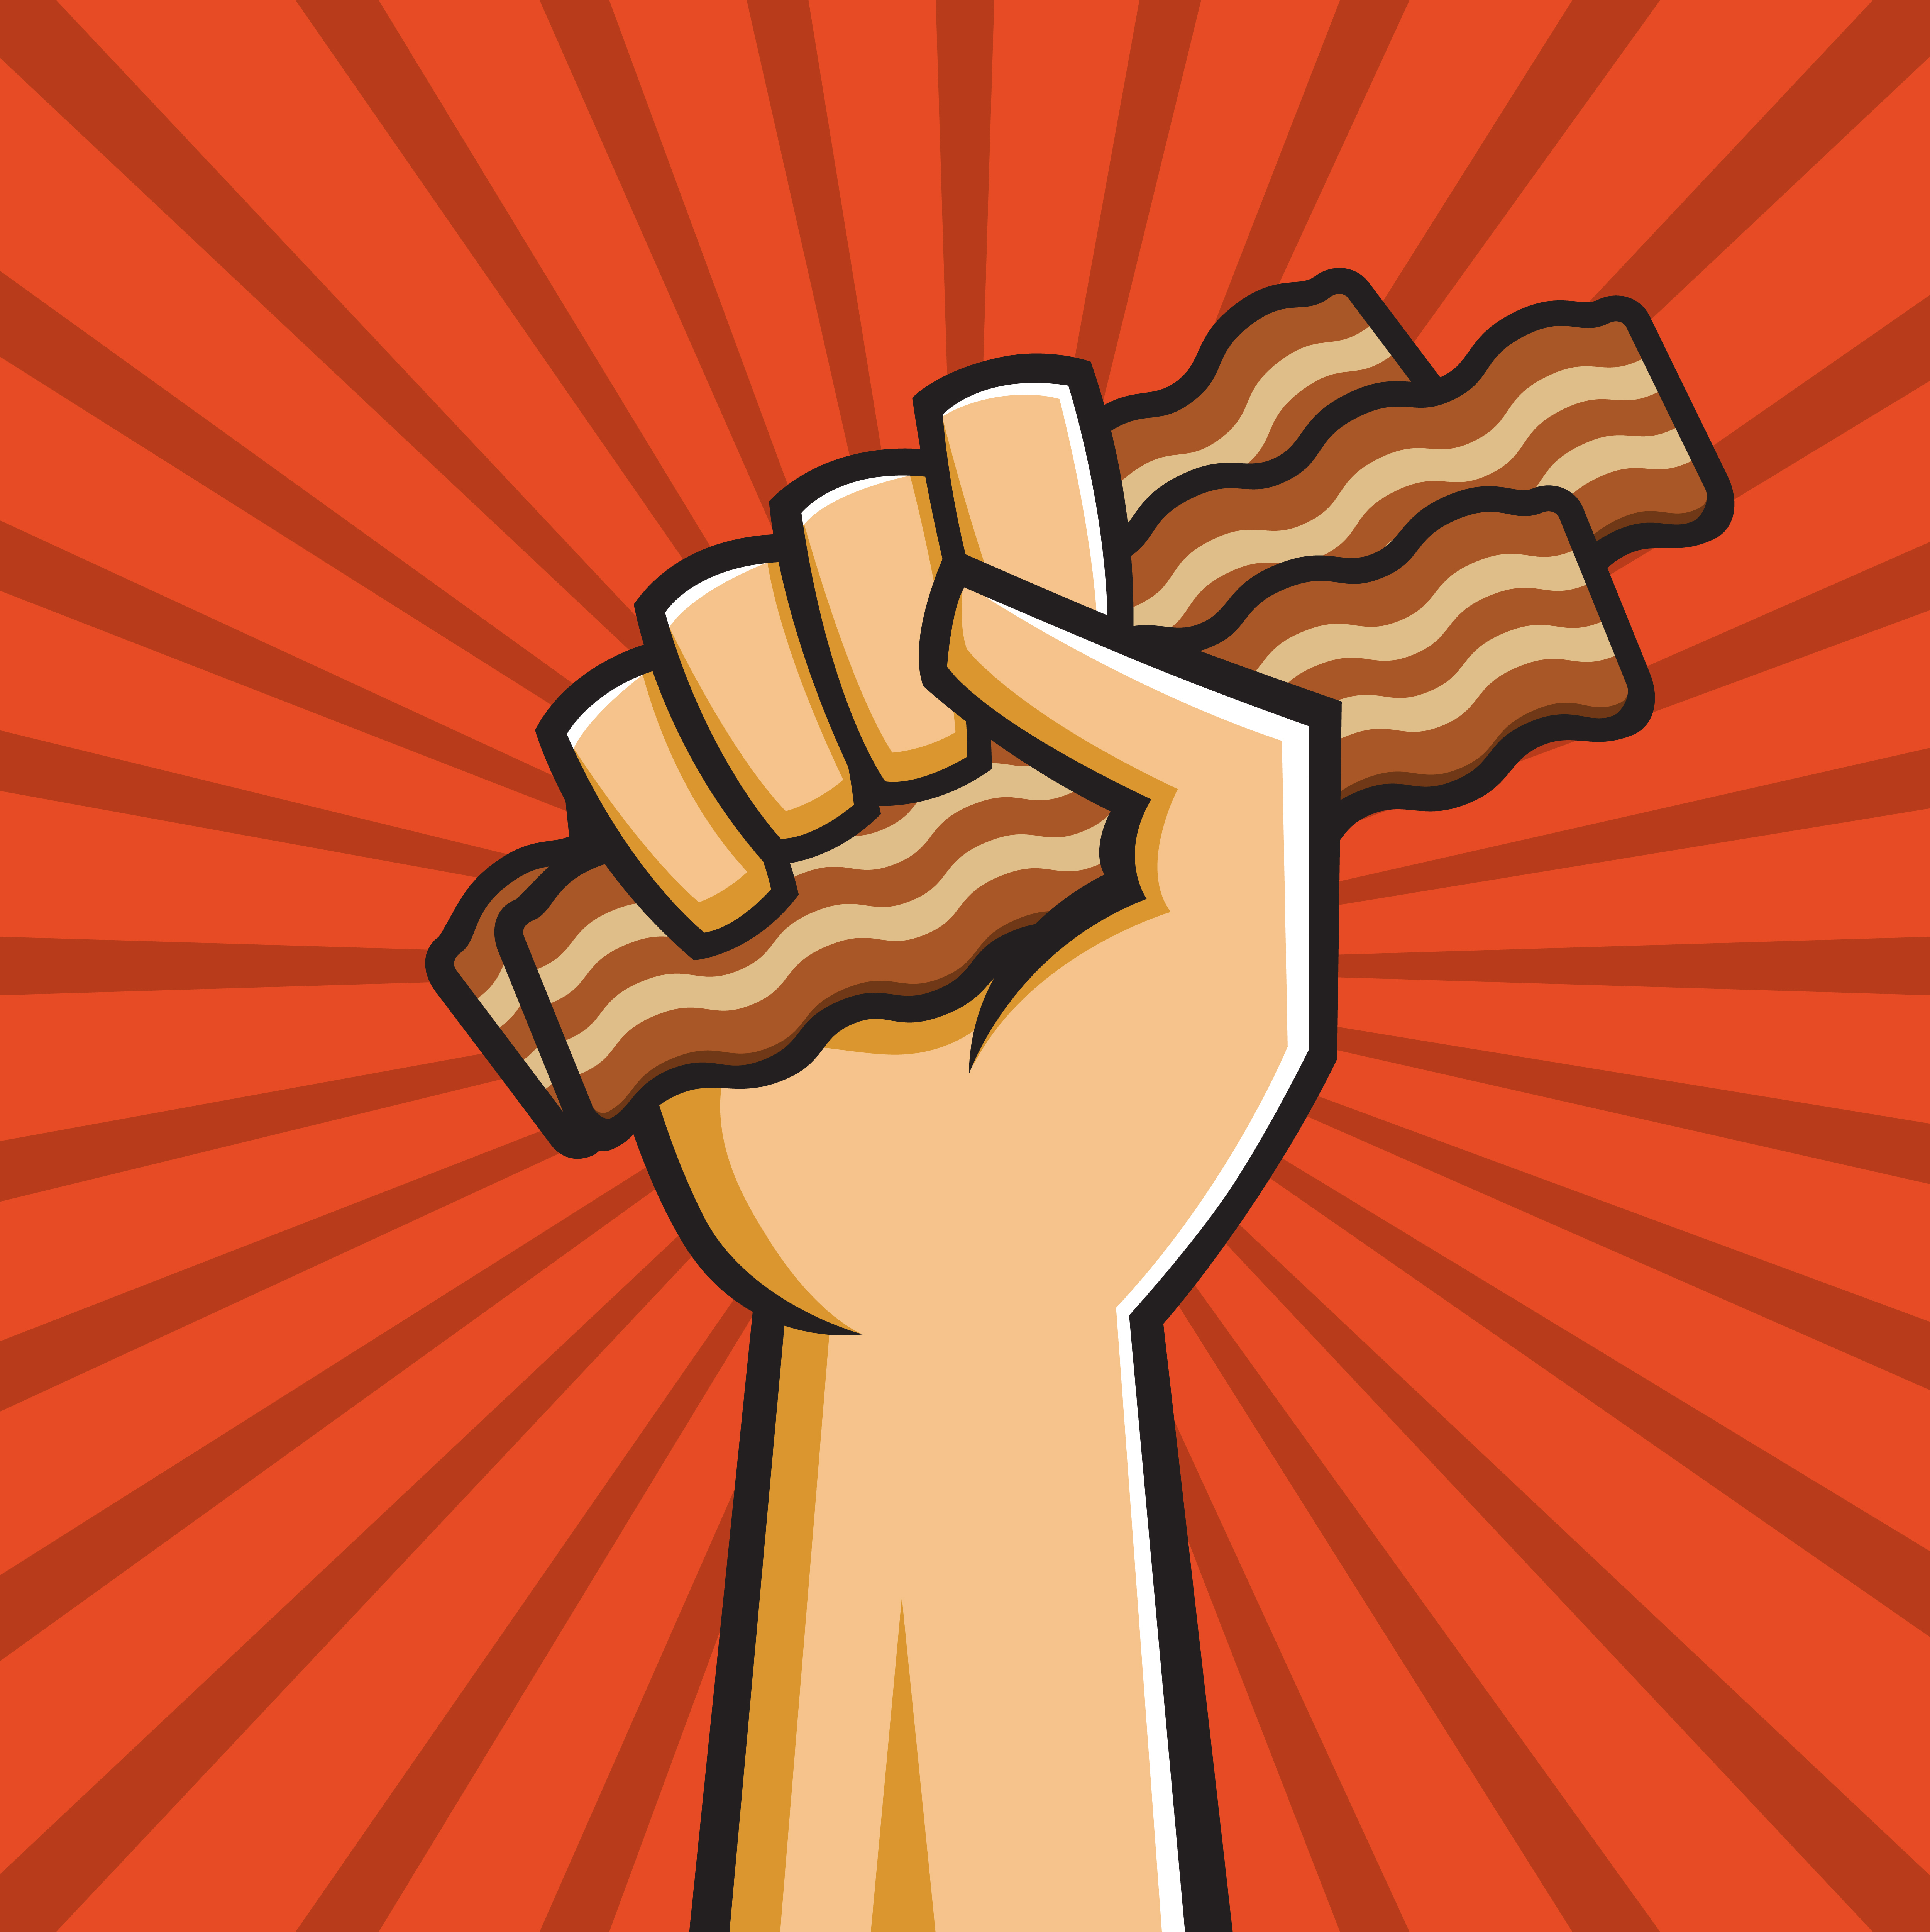 See More News From The Blue Ribbon Bacon Festival At Salon